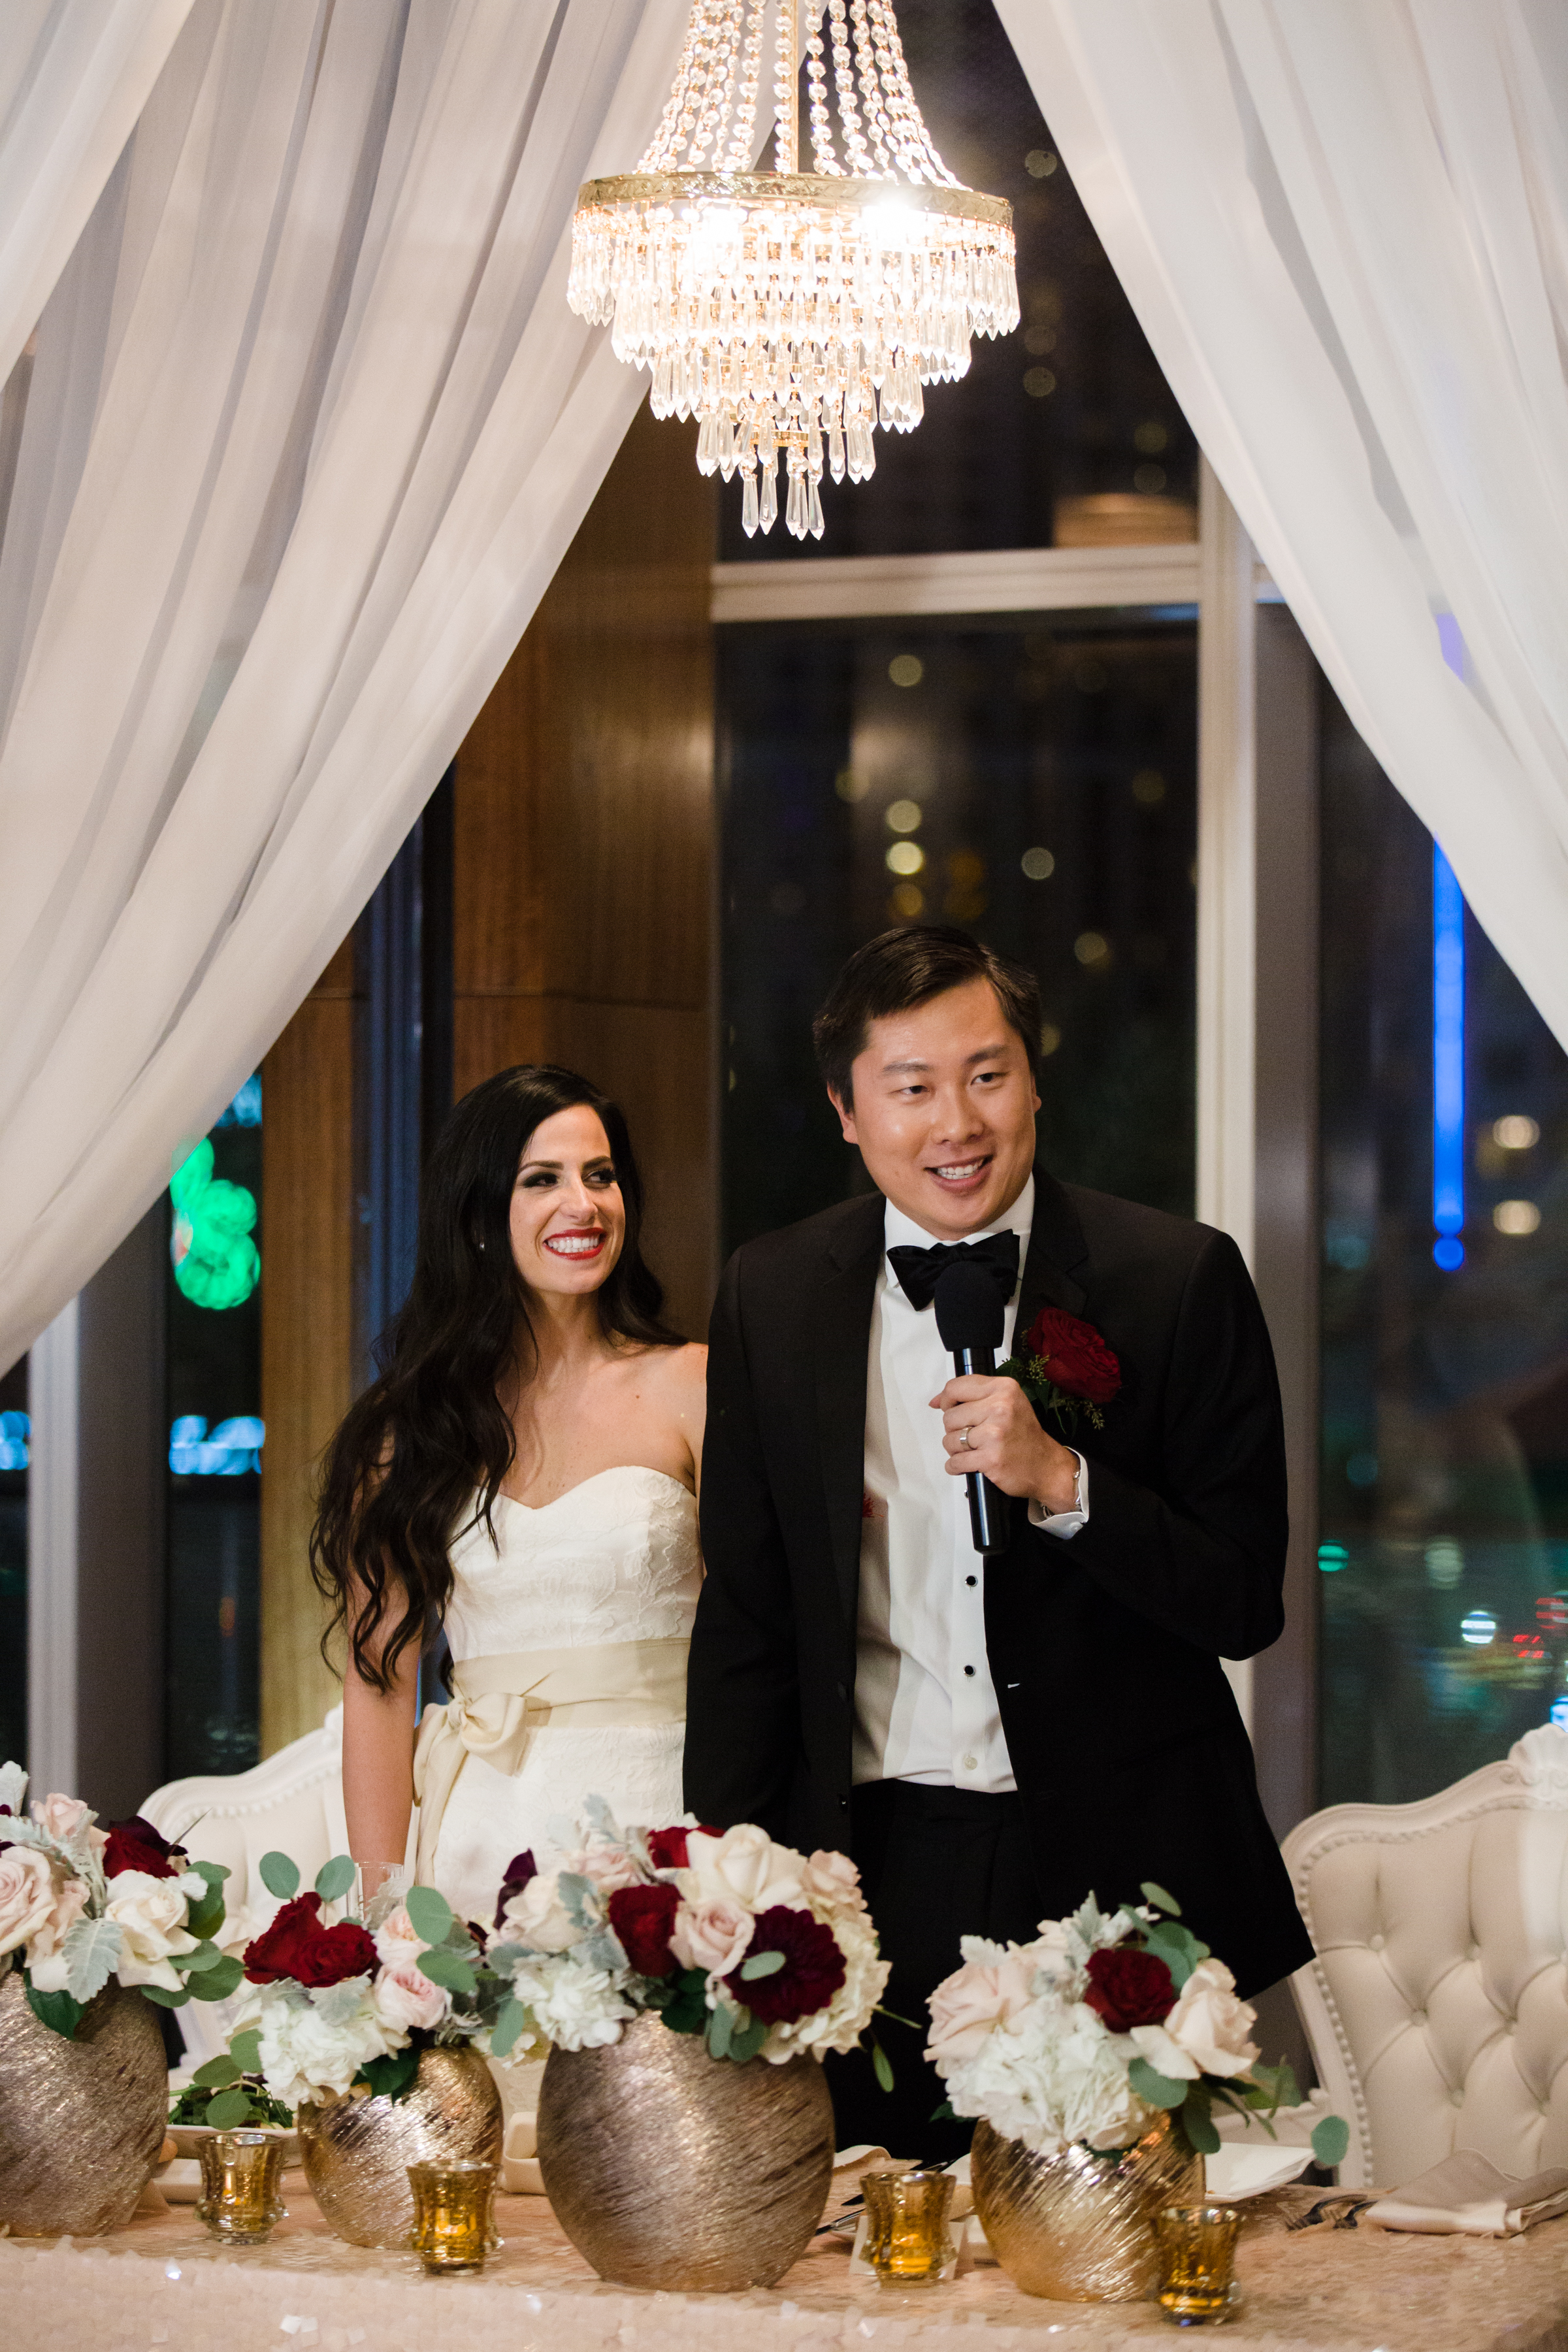 Thank you toast from the bride and groom.Luxury wedding at the Mandarin Oriental with a color scheme of white, blush, and pops of wine red produced by Las Vegas Wedding Planner Andrea Eppolito with photos by Stephen Salazar Photography.